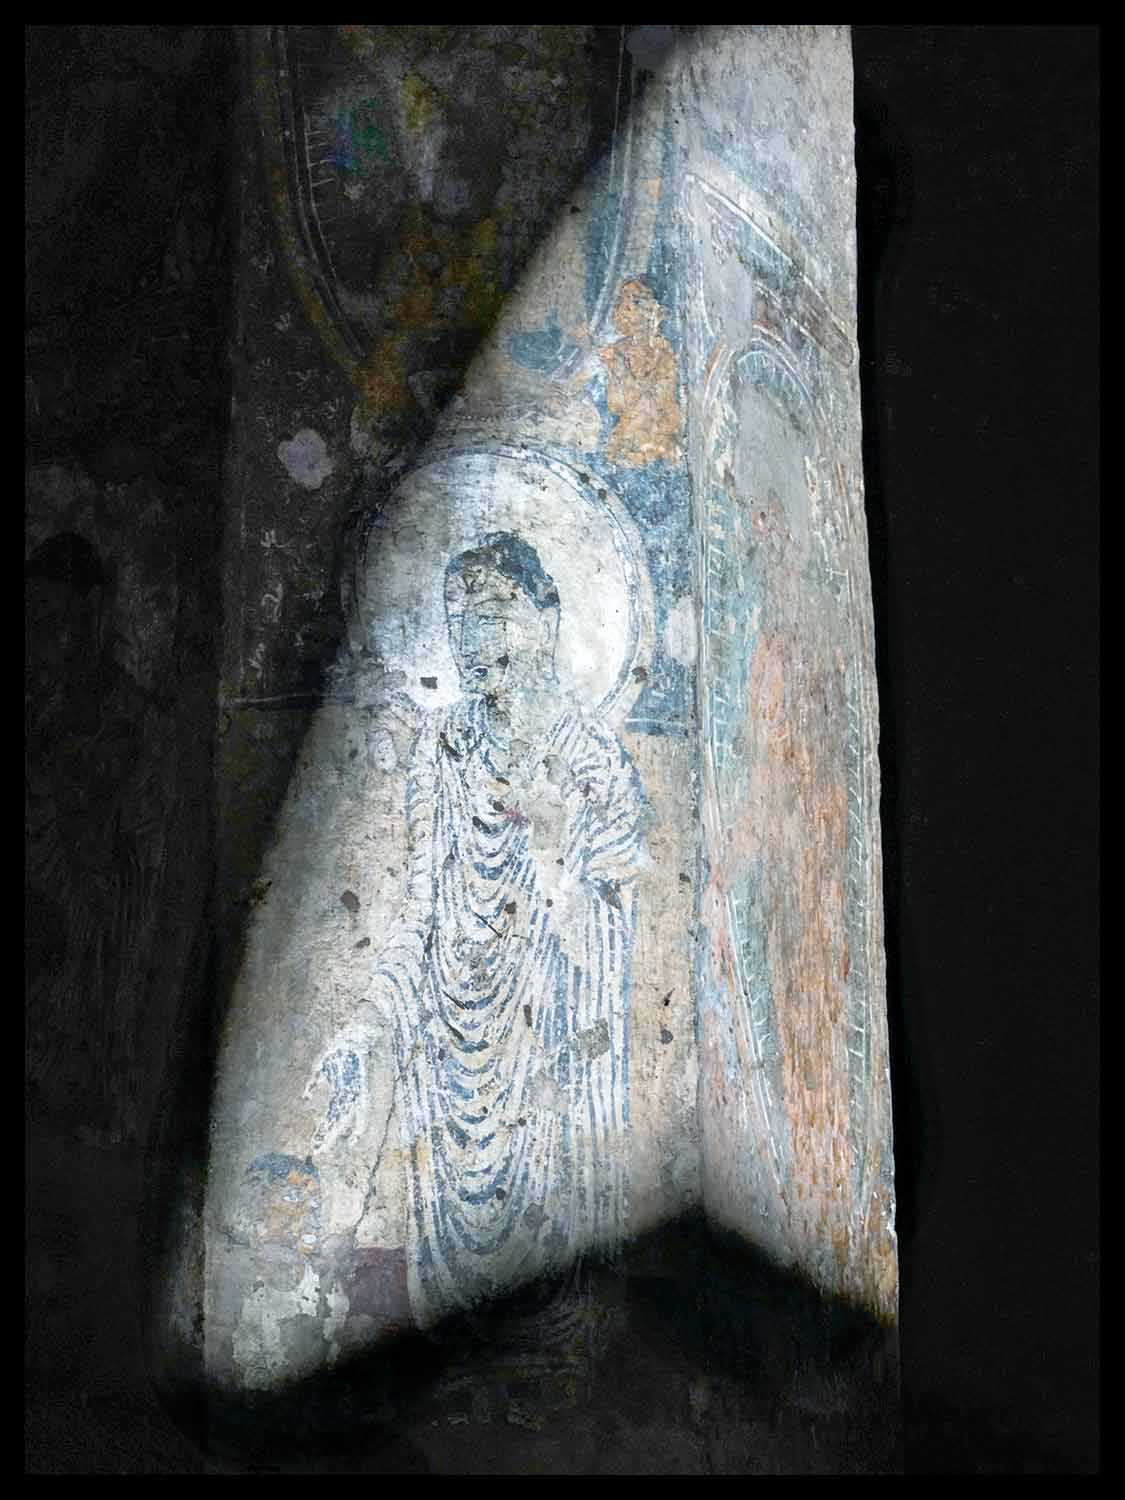 Sunlight on the Buddha, cave 10, Ajanta